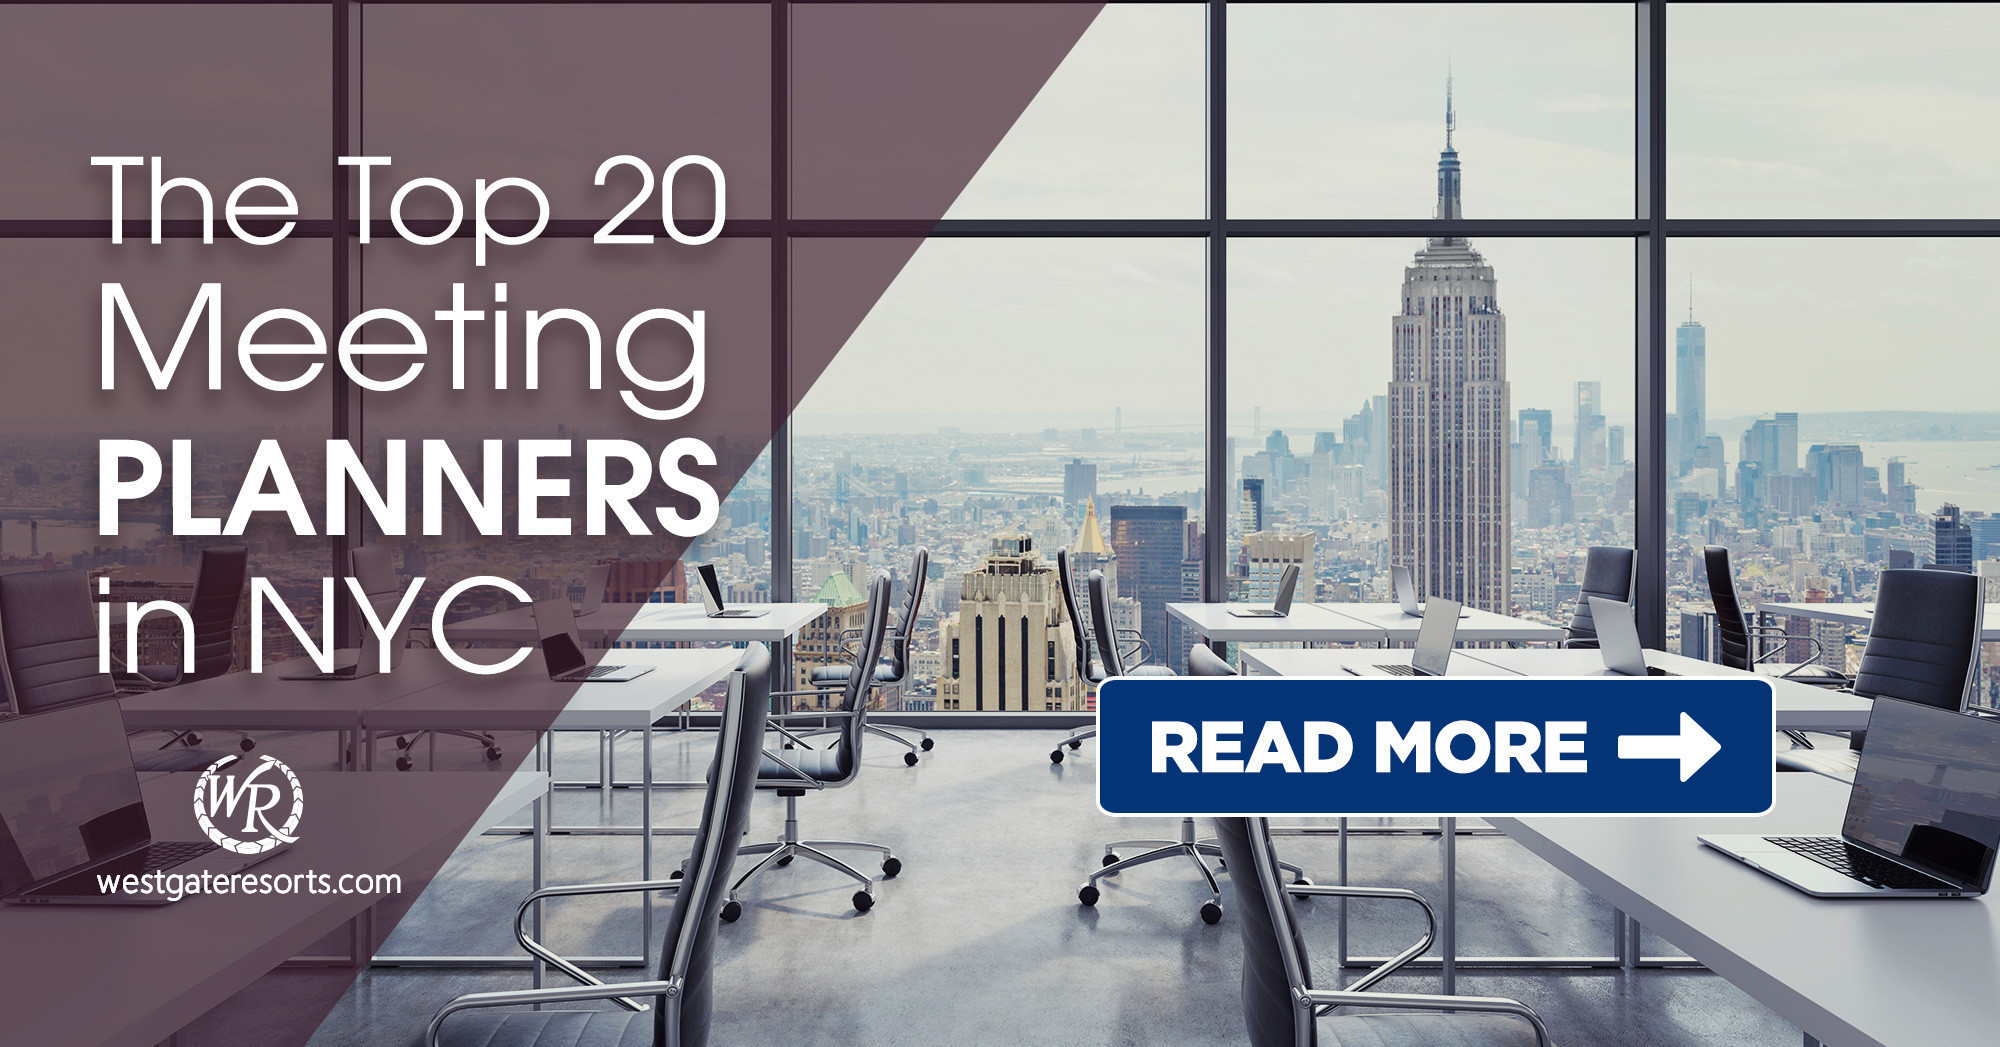 The Top 20 Meeting Planners in NYC (UPDATED 2021)